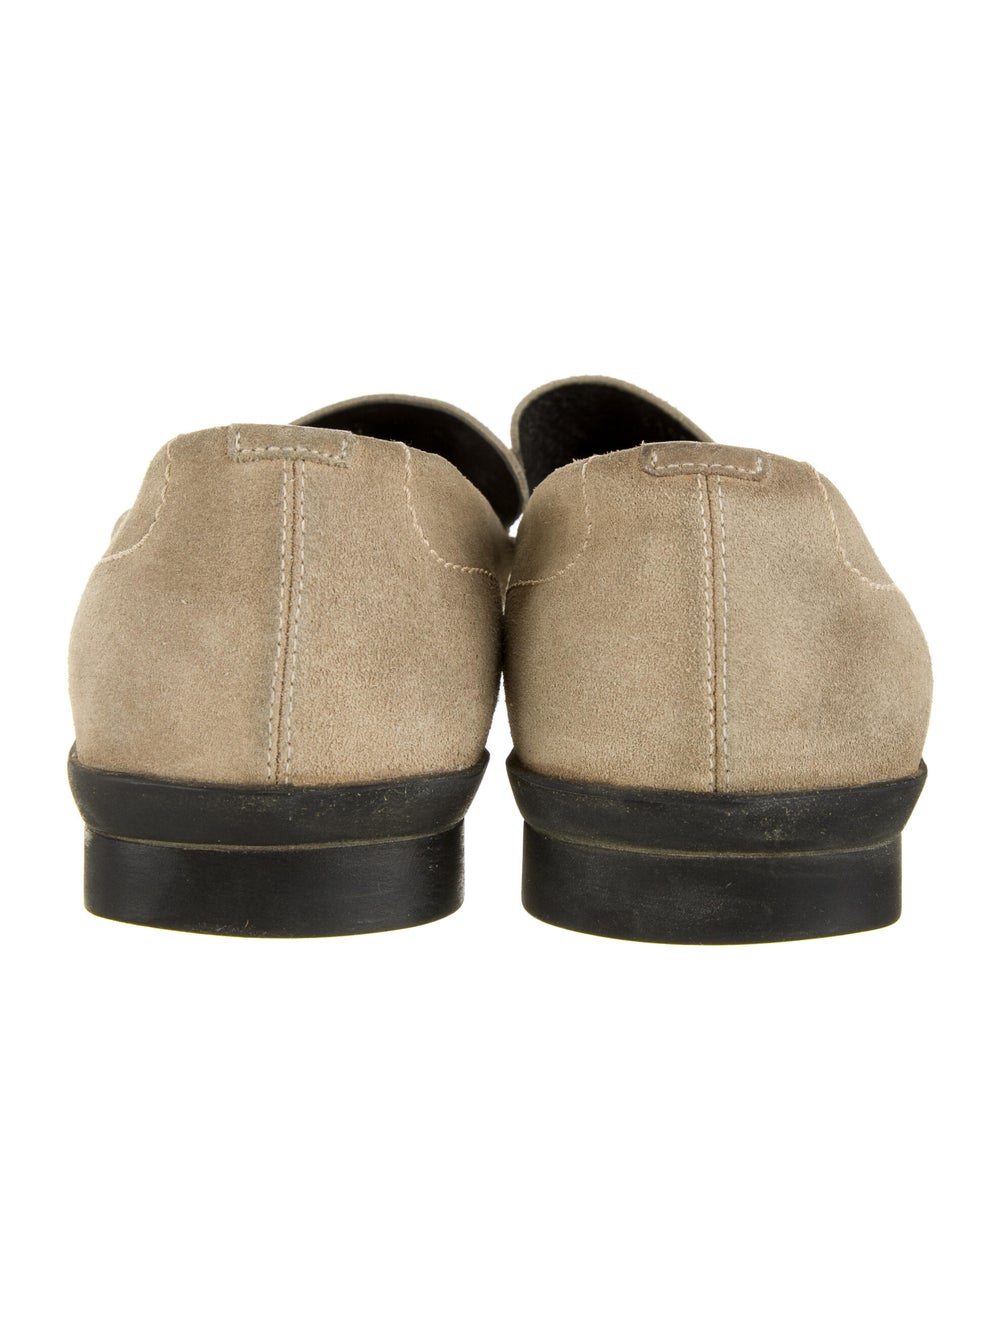 Gucci Suede Dress Loafers - image 4